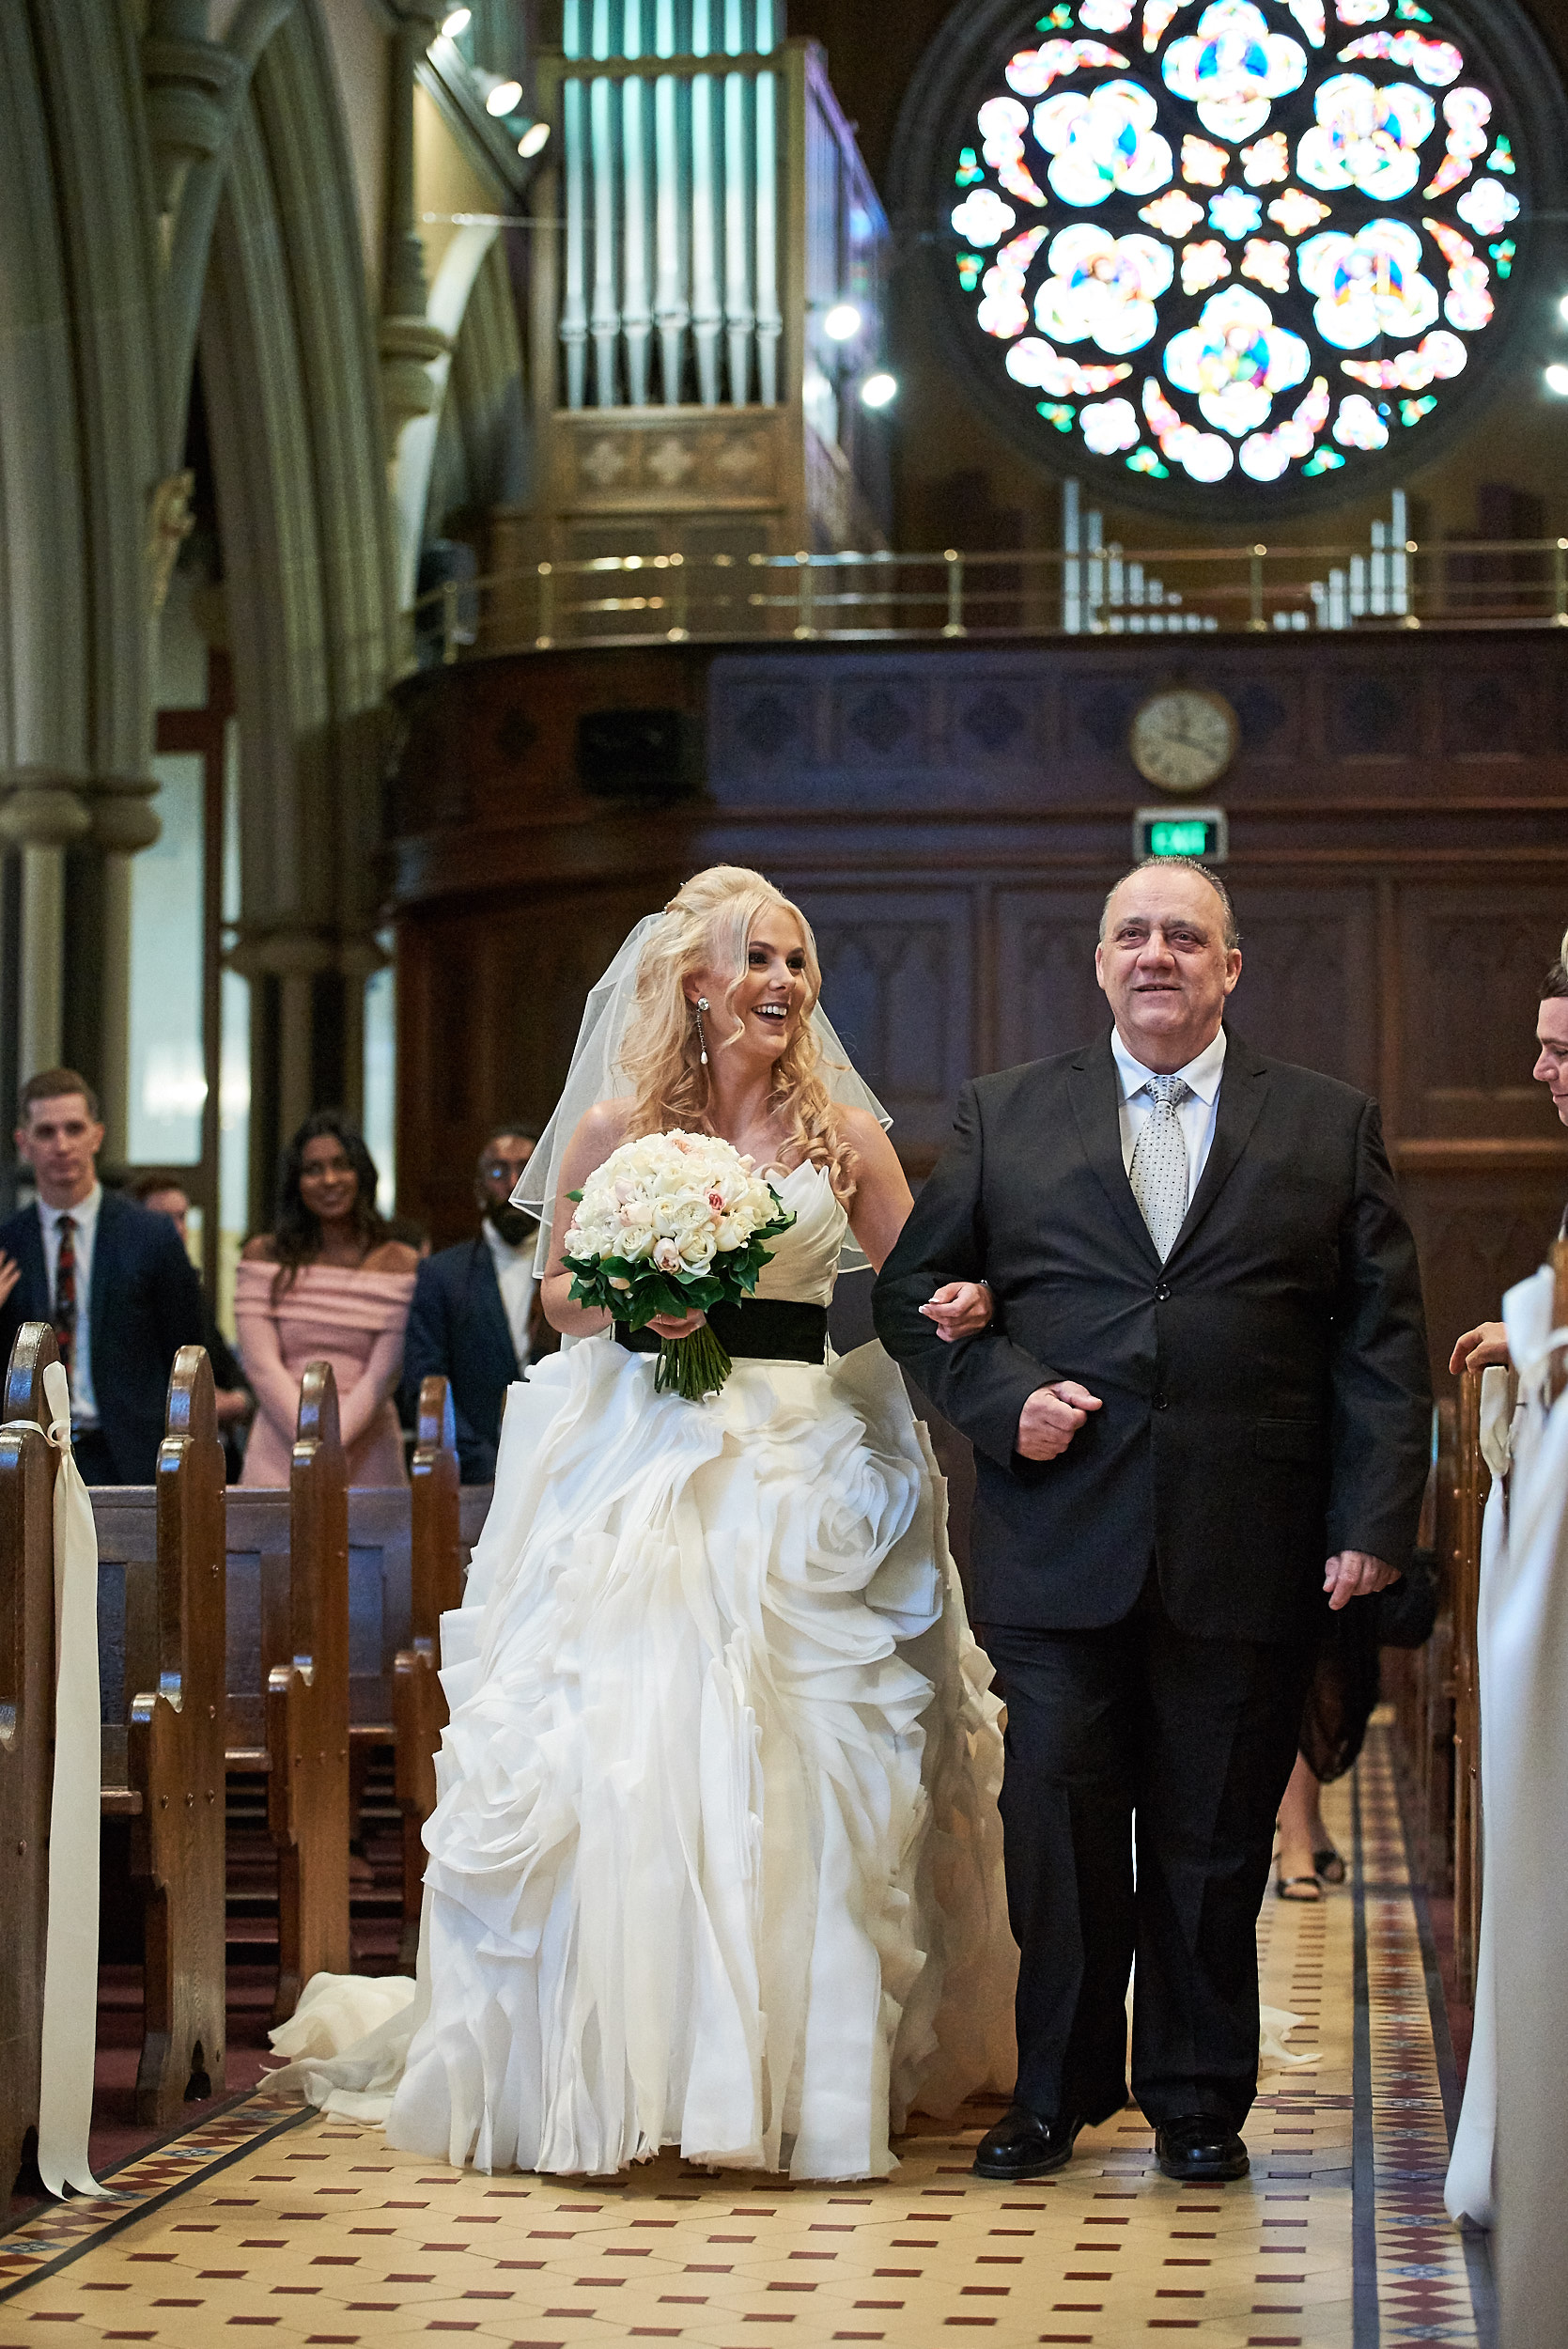 Bride and father walking down aisle at St Mary of the Angels Basilica church in Geelong